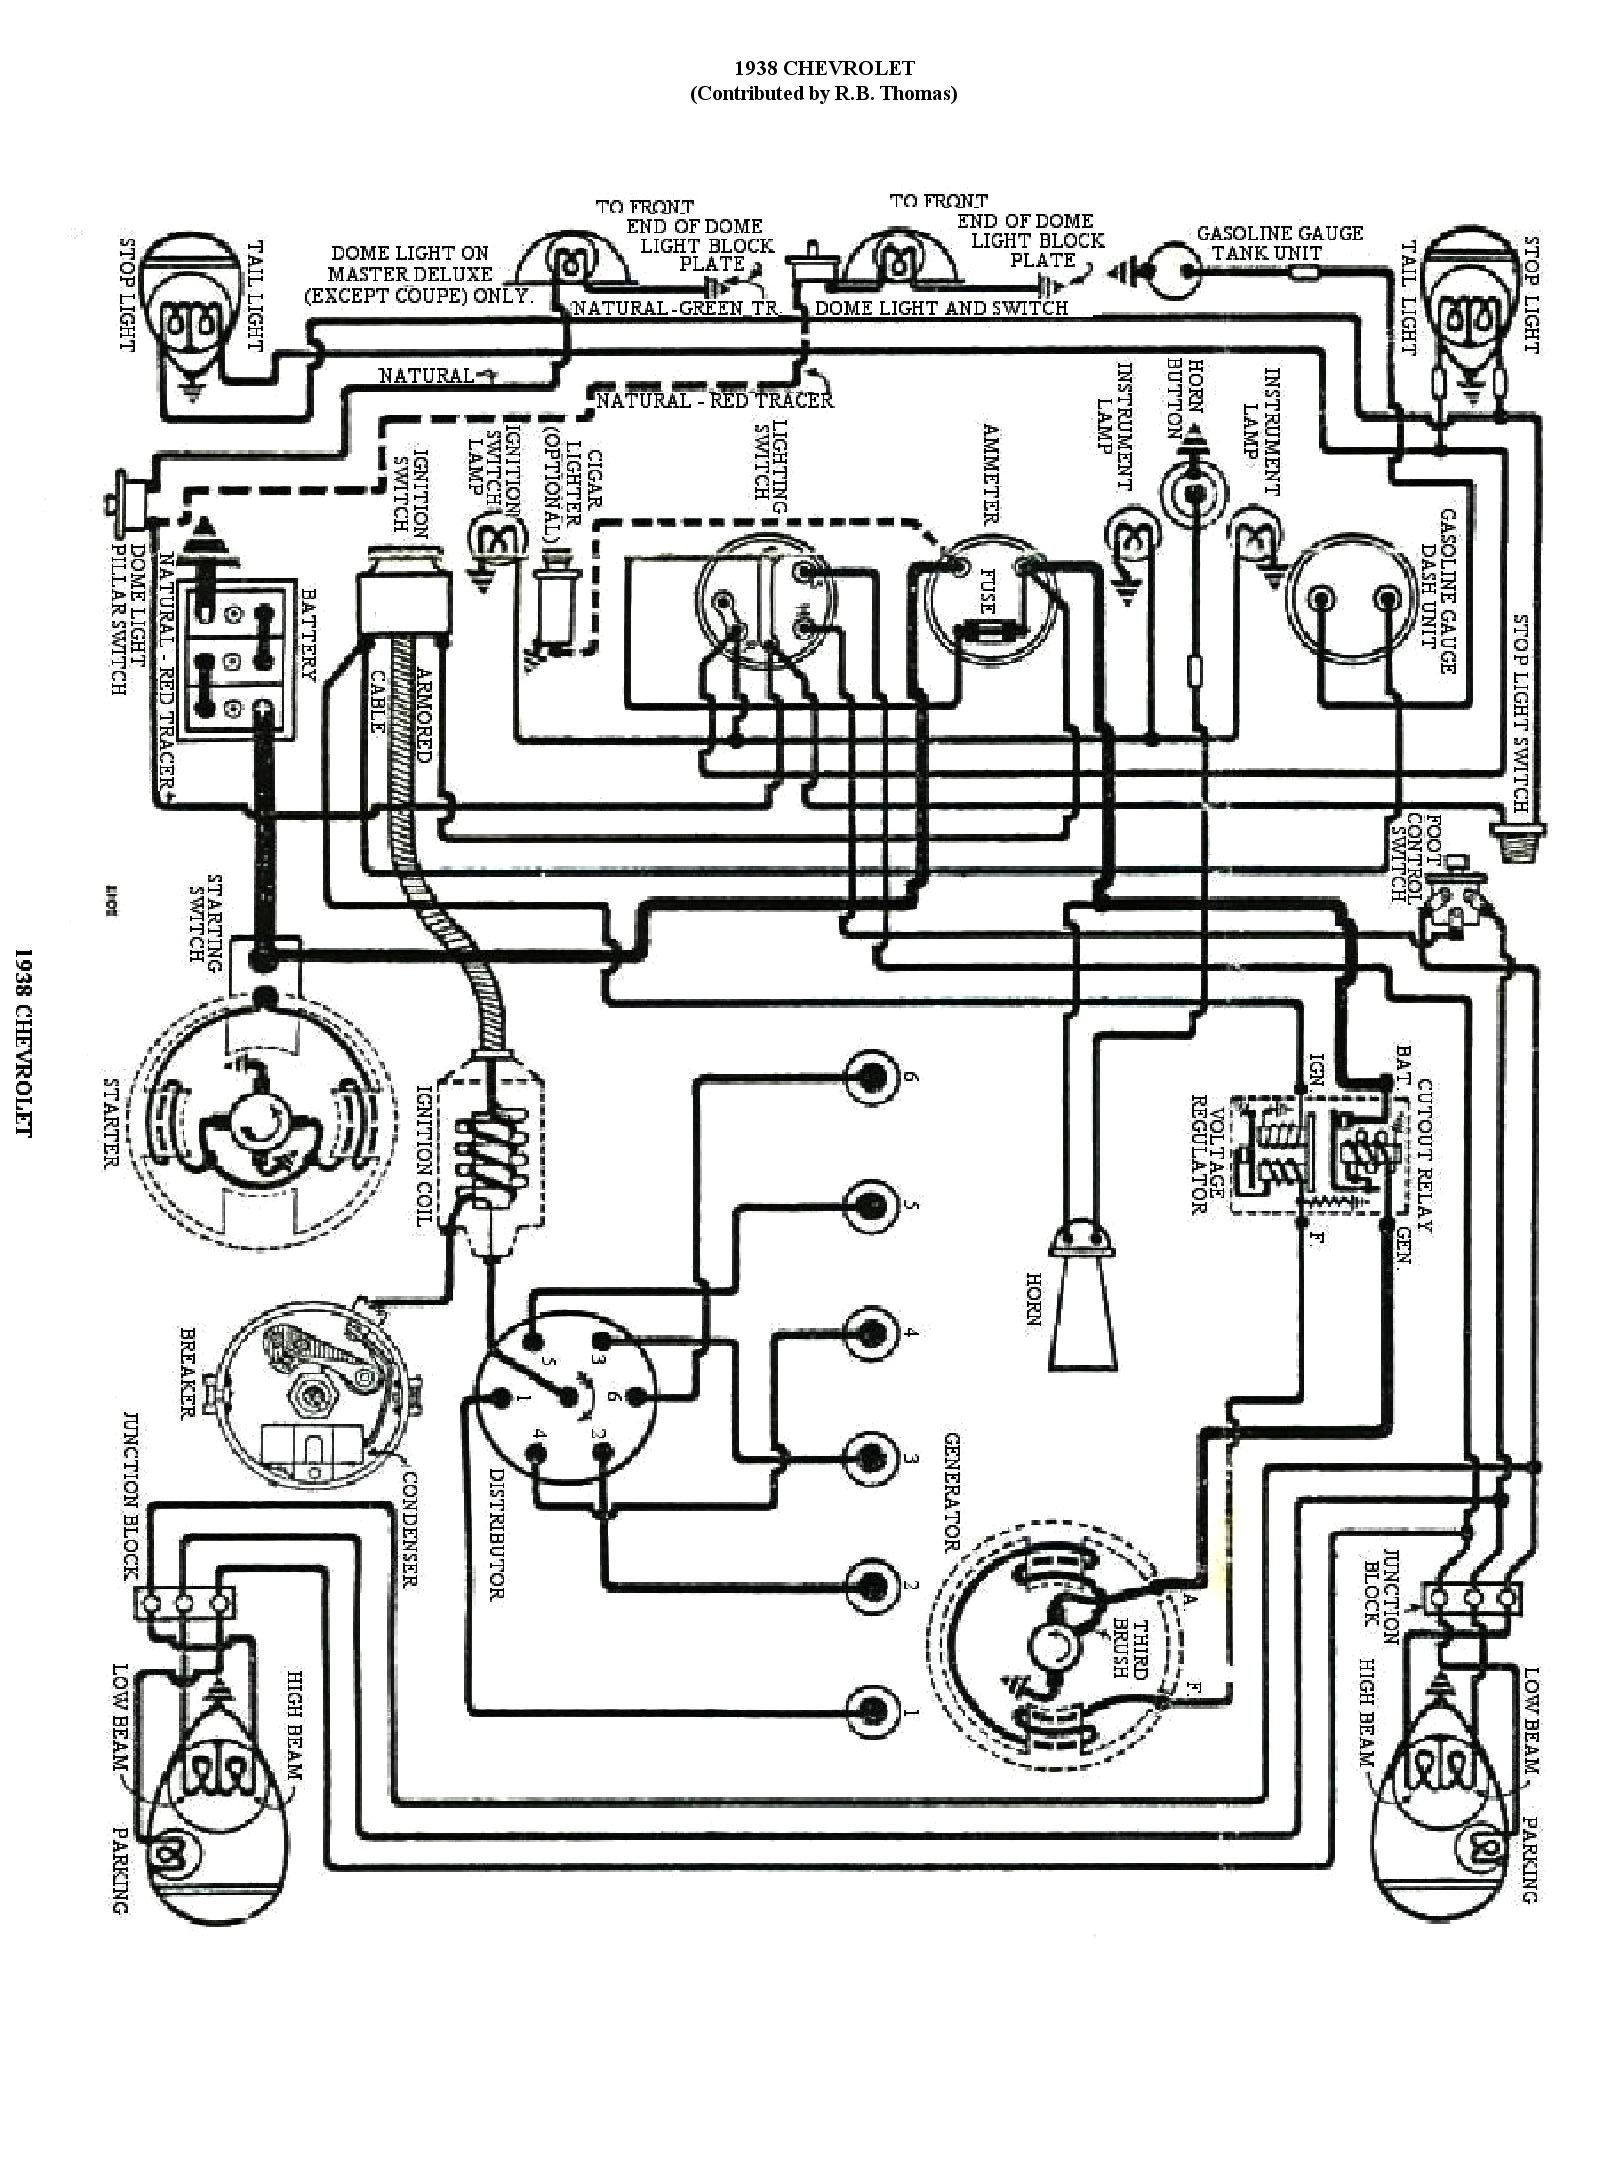 chevy wiring diagrams General Motors Wiring Diagrams 1938 wiring